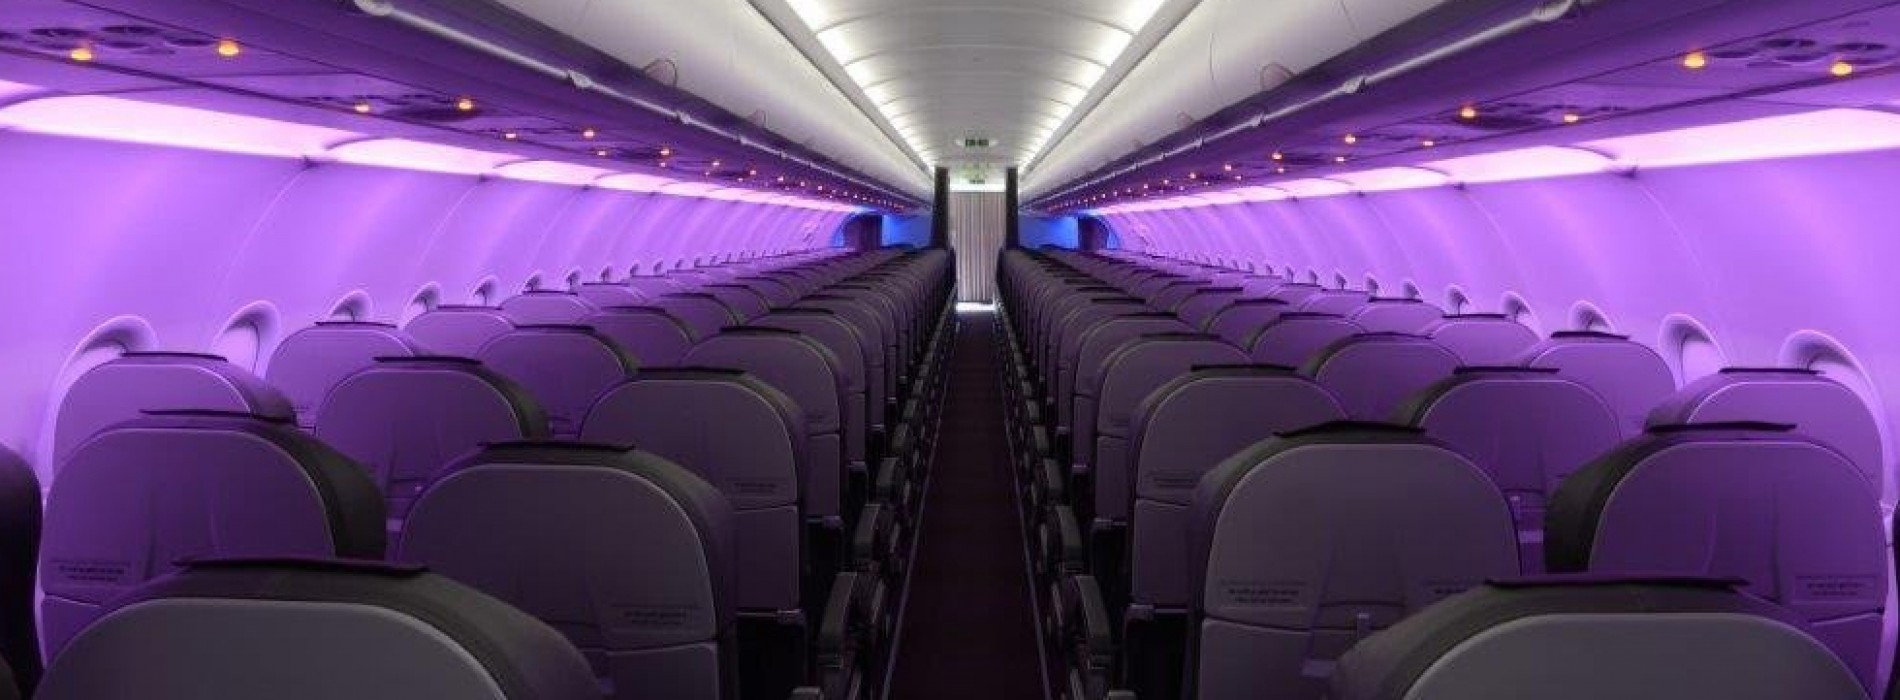 Vistara takes delivery of its first Airbus A320neo today says its #NotJustAnotherNeo